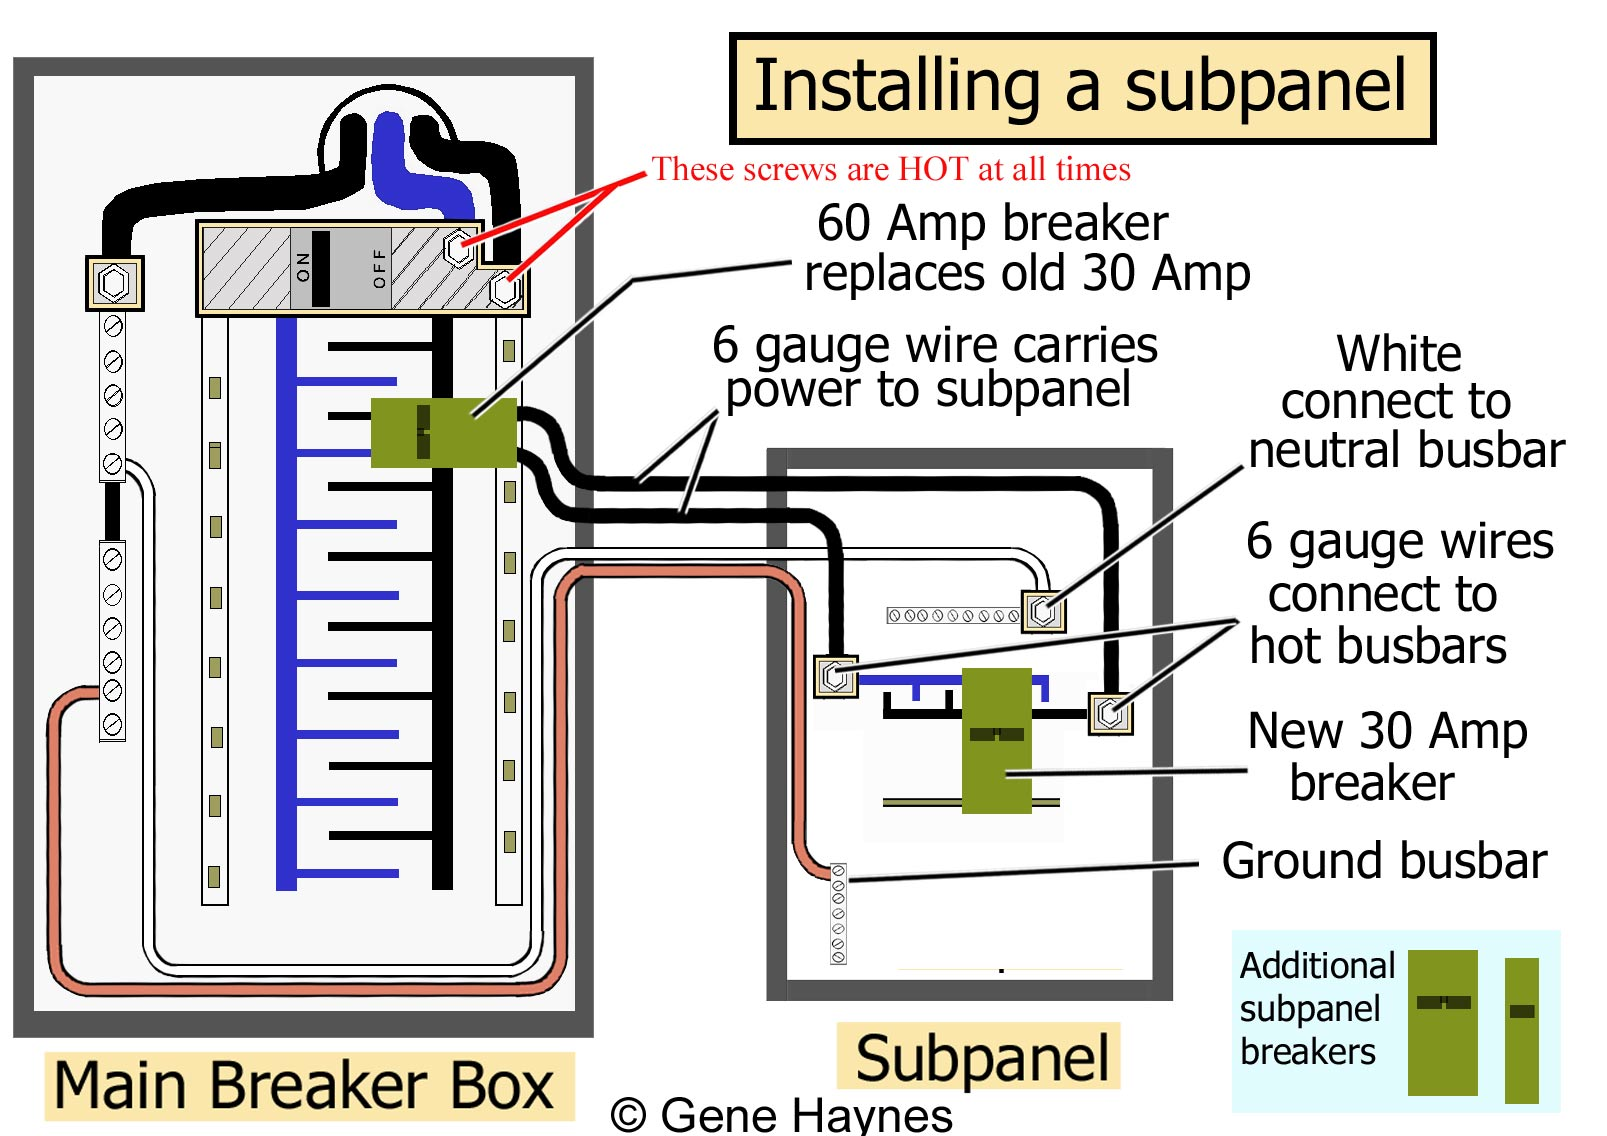 How to install a subpanel how to install main lug 1 60 150 amp breaker replaces any 240 breaker in main box near top of box greentooth Choice Image